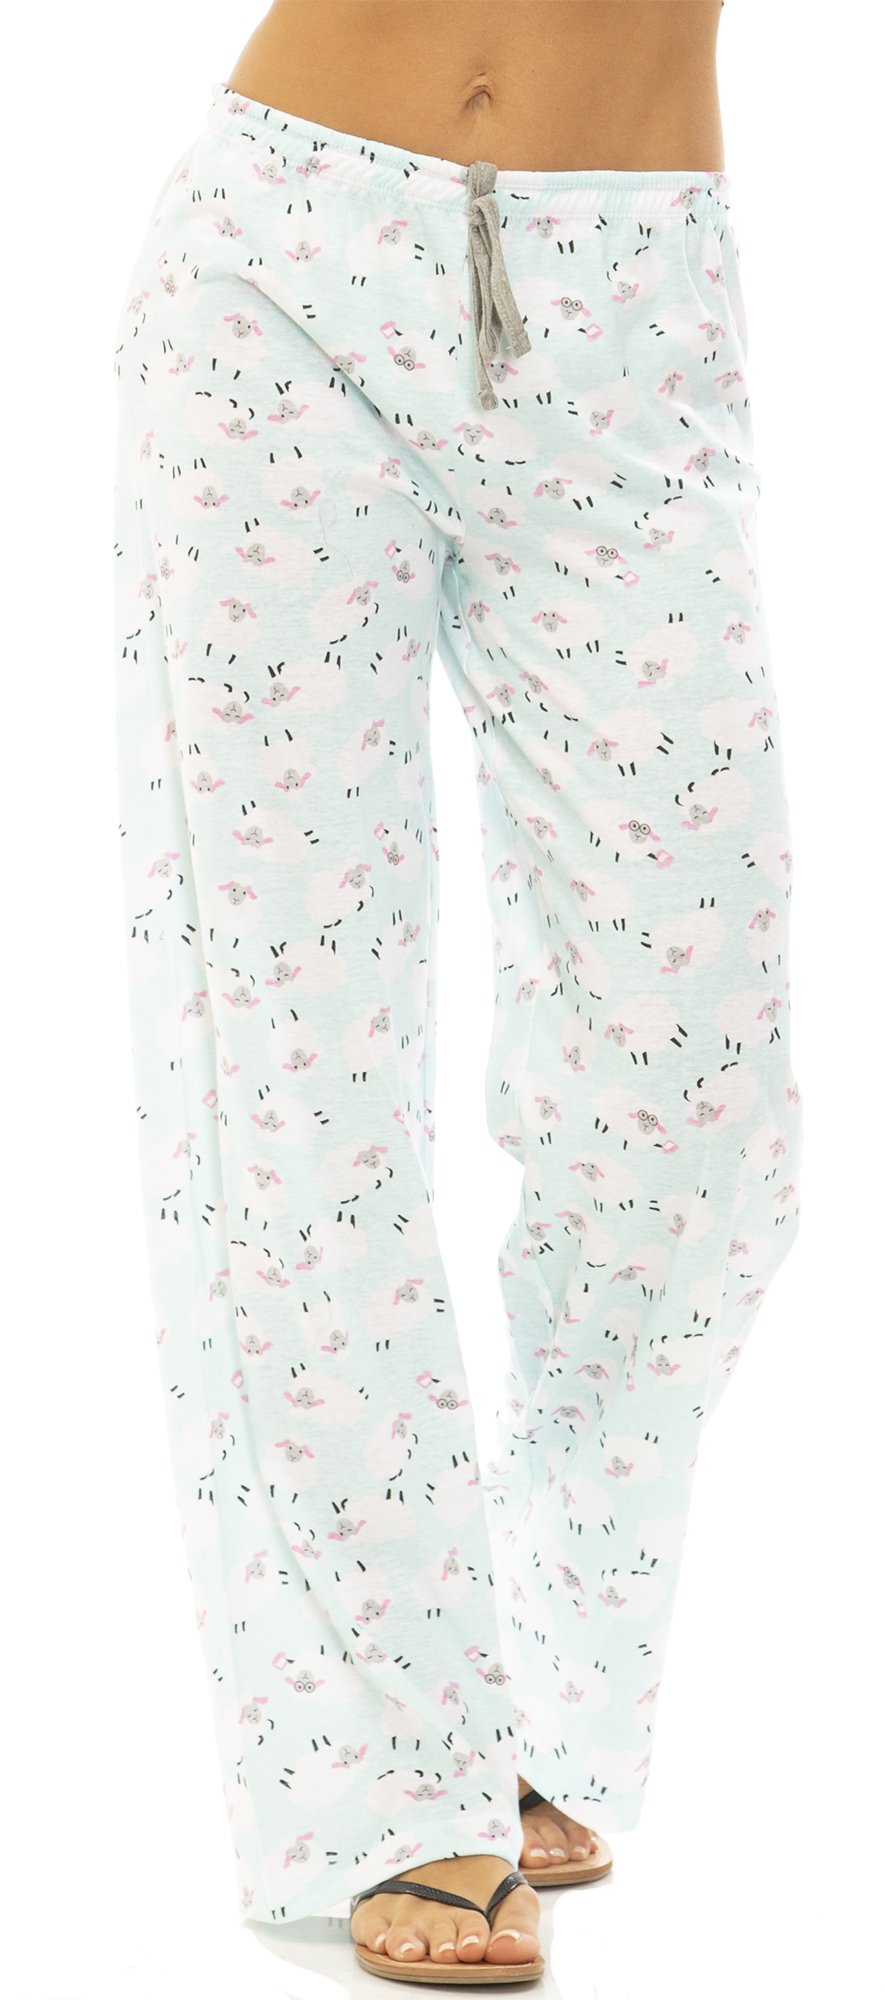 dollhouse (6929BV) Womens Cotton Jersey Drawstring Pajama Bottoms Size: Large in Blue Sheep (421)